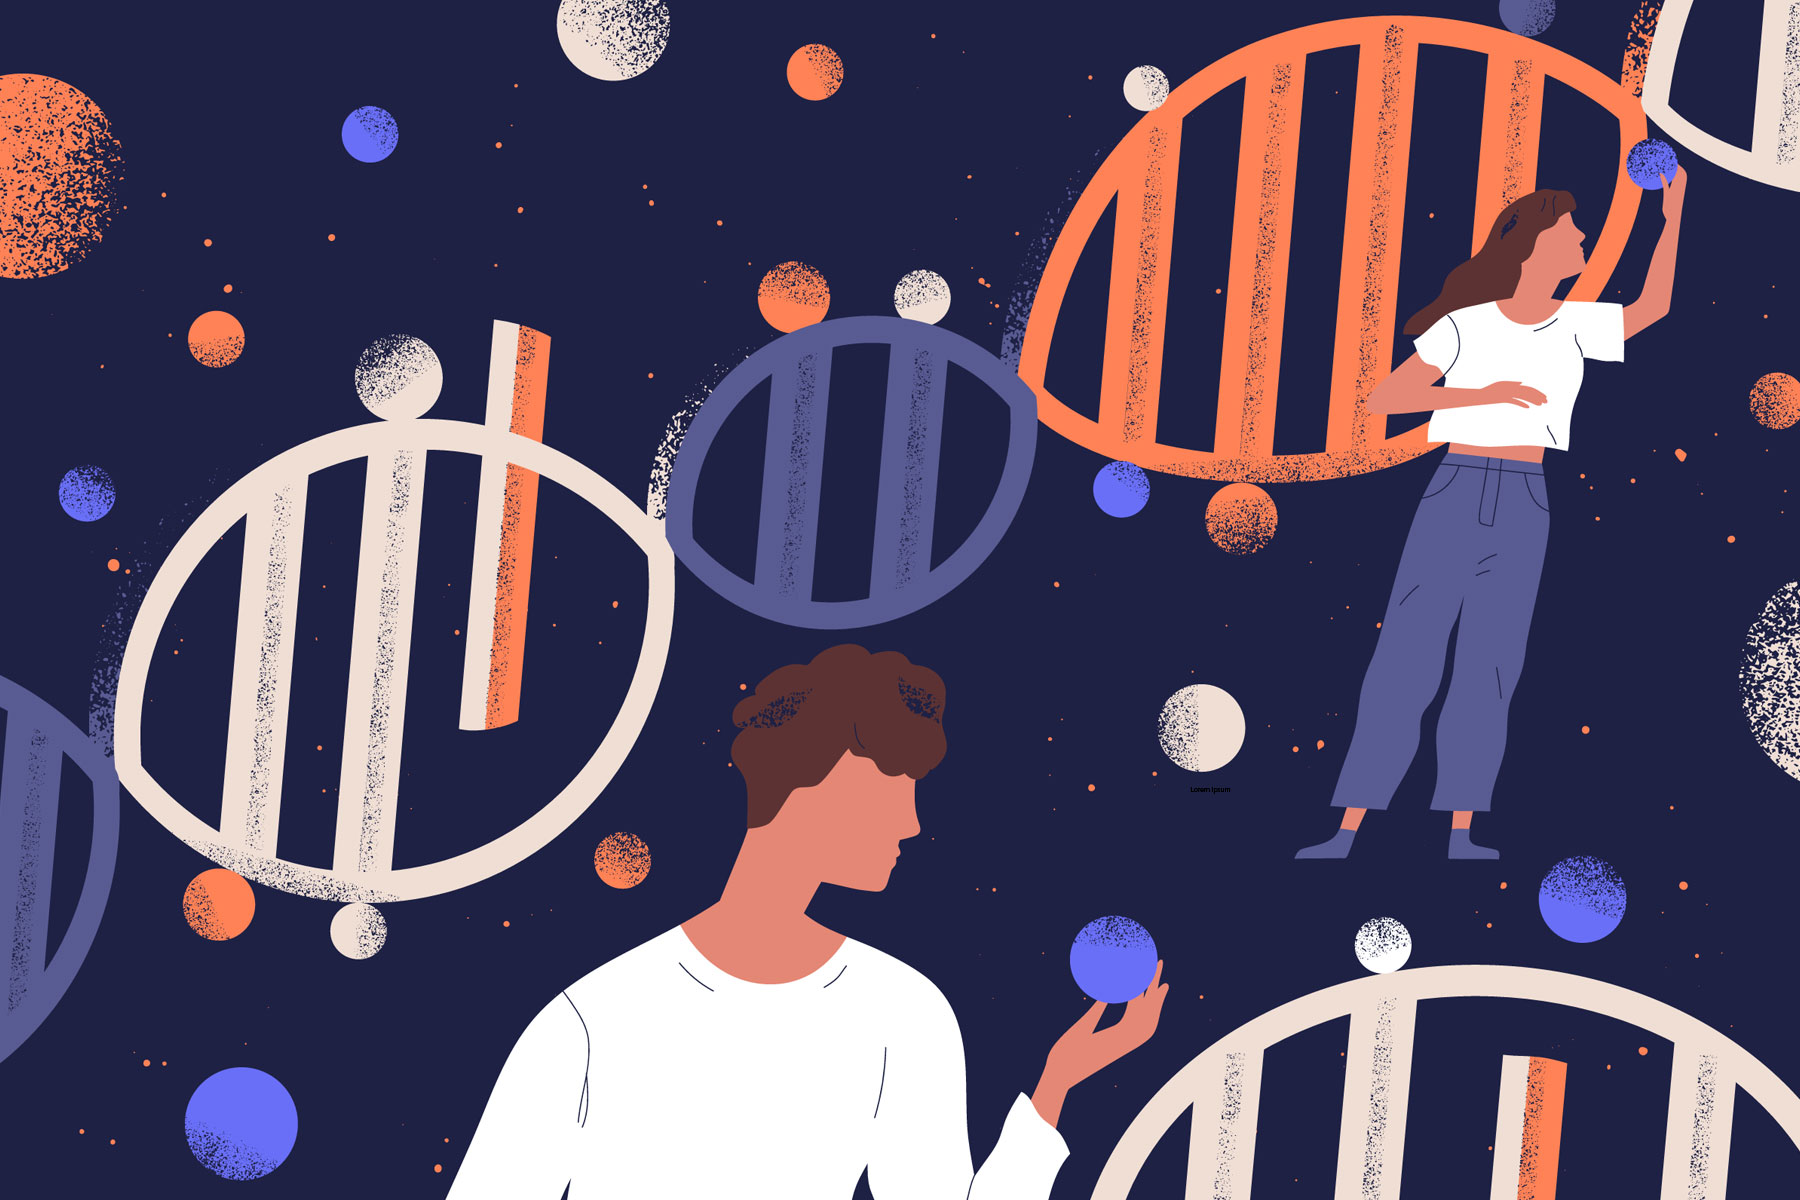 How genomics impacts daily life